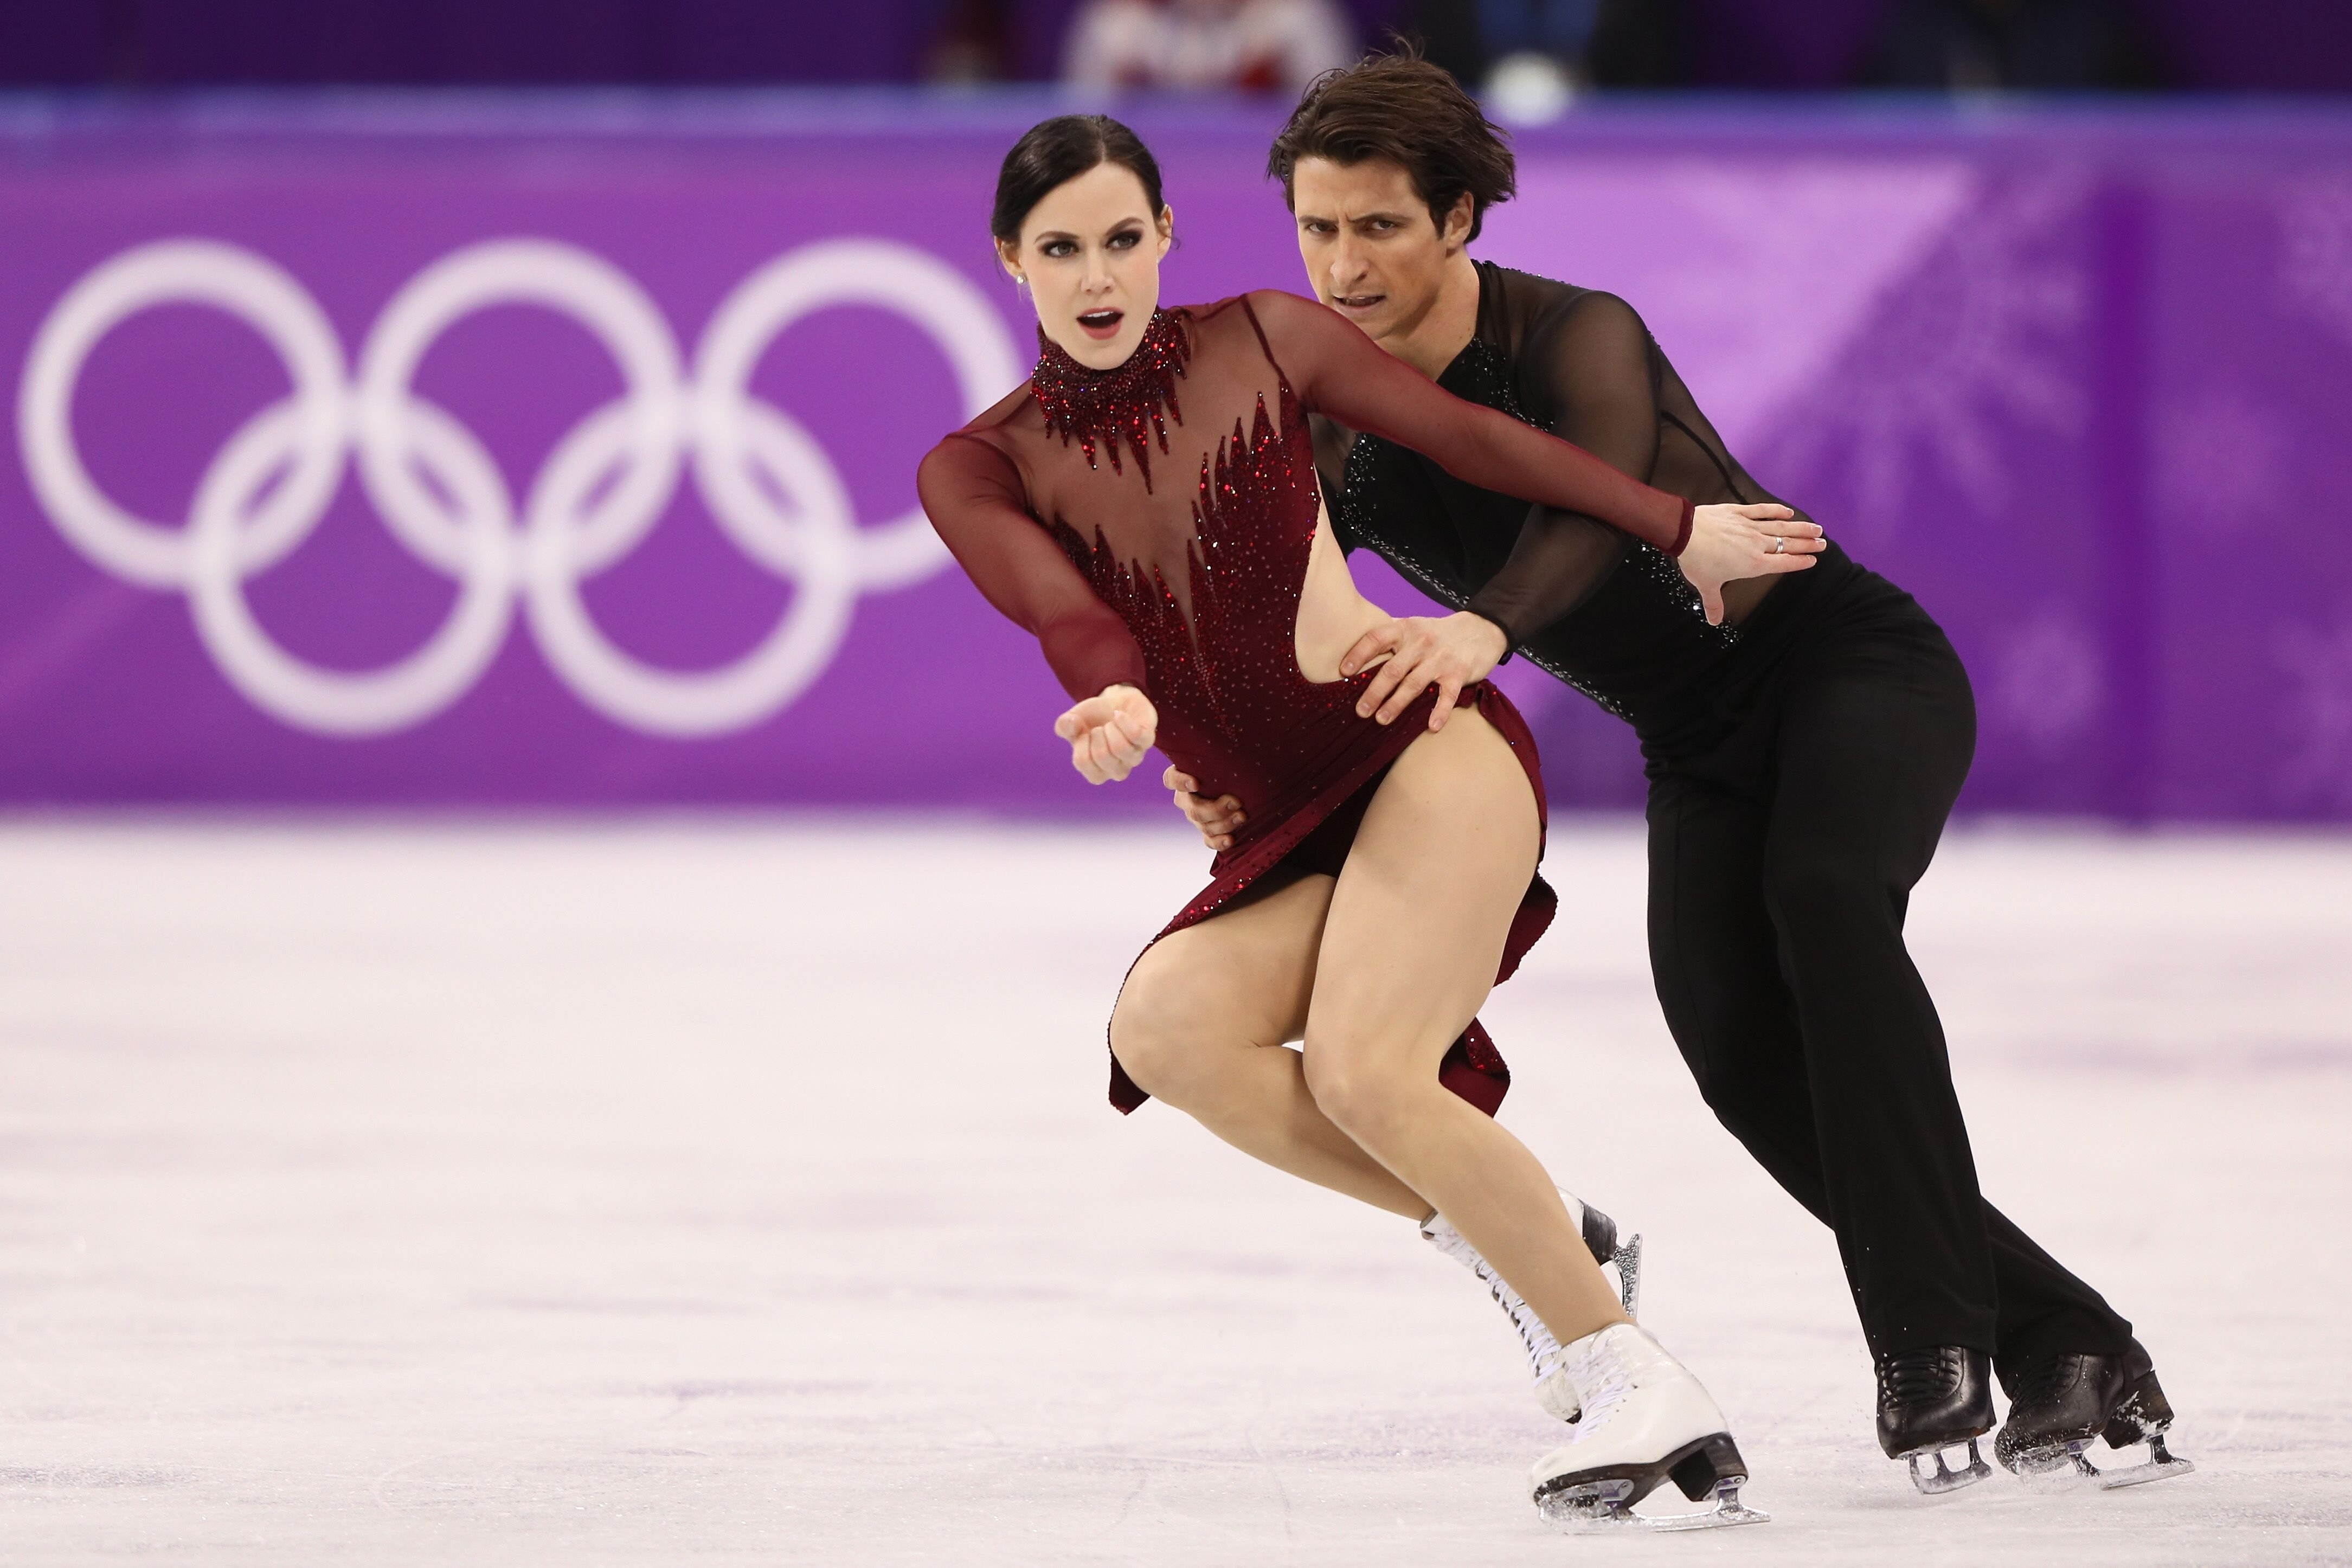 Tessa Virtue and Scott Moir competing at the Figure Skating Ice Dance Free Dance in PyeongChang at the 2018 Winter Olympic Games | Source: Getty Images